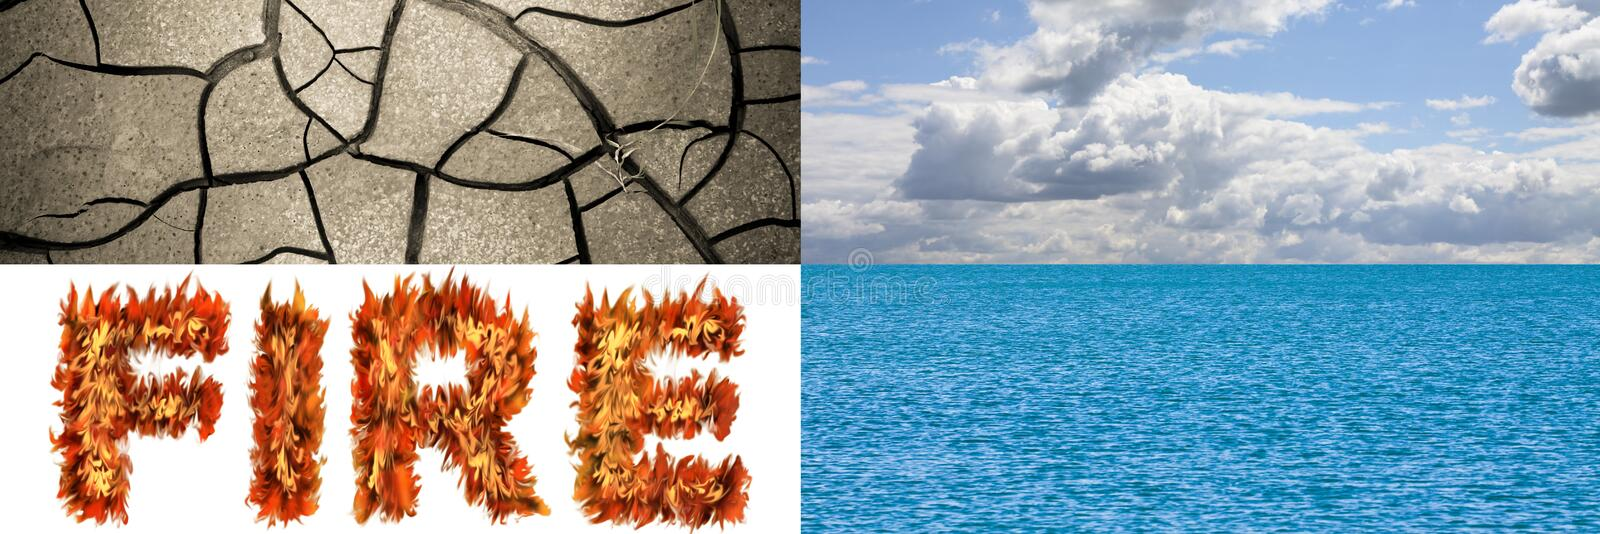 The four elements in nature: earth, air, fire, water - concept image with copy space royalty free stock photo